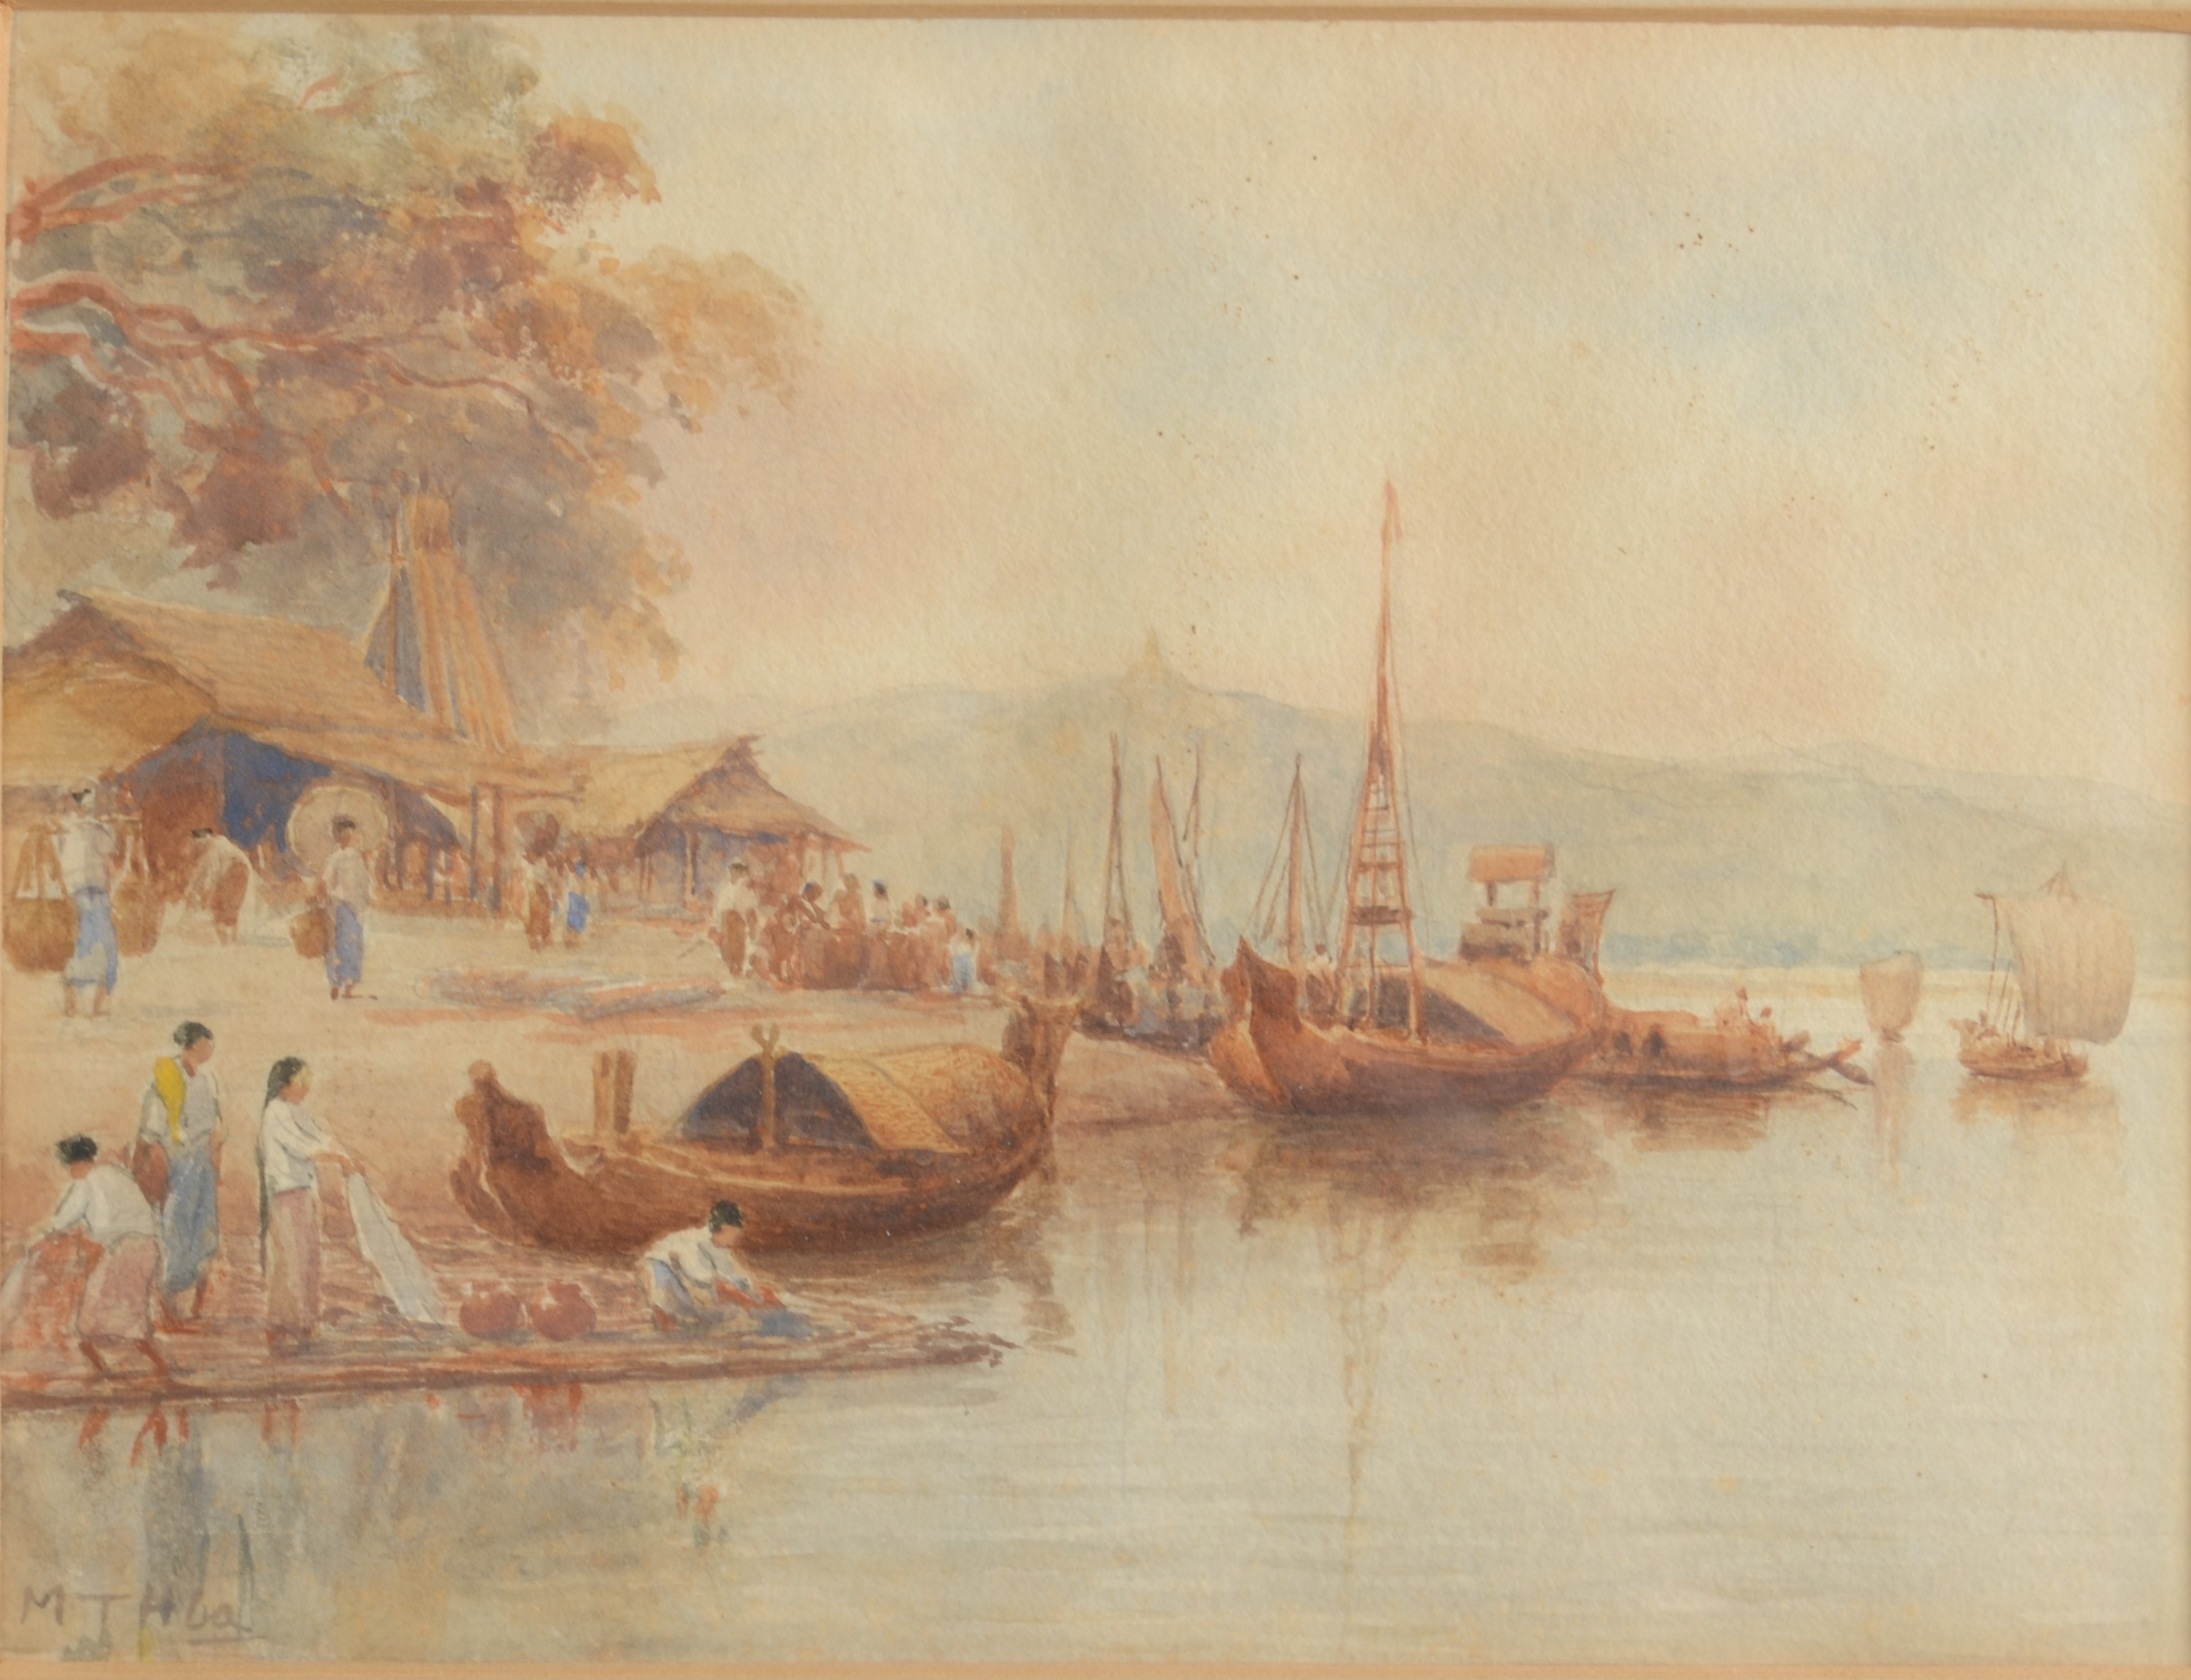 Lot 42 - MG TUN HLA Village Activities by The River Watercolour Signed 14 x 19 cm